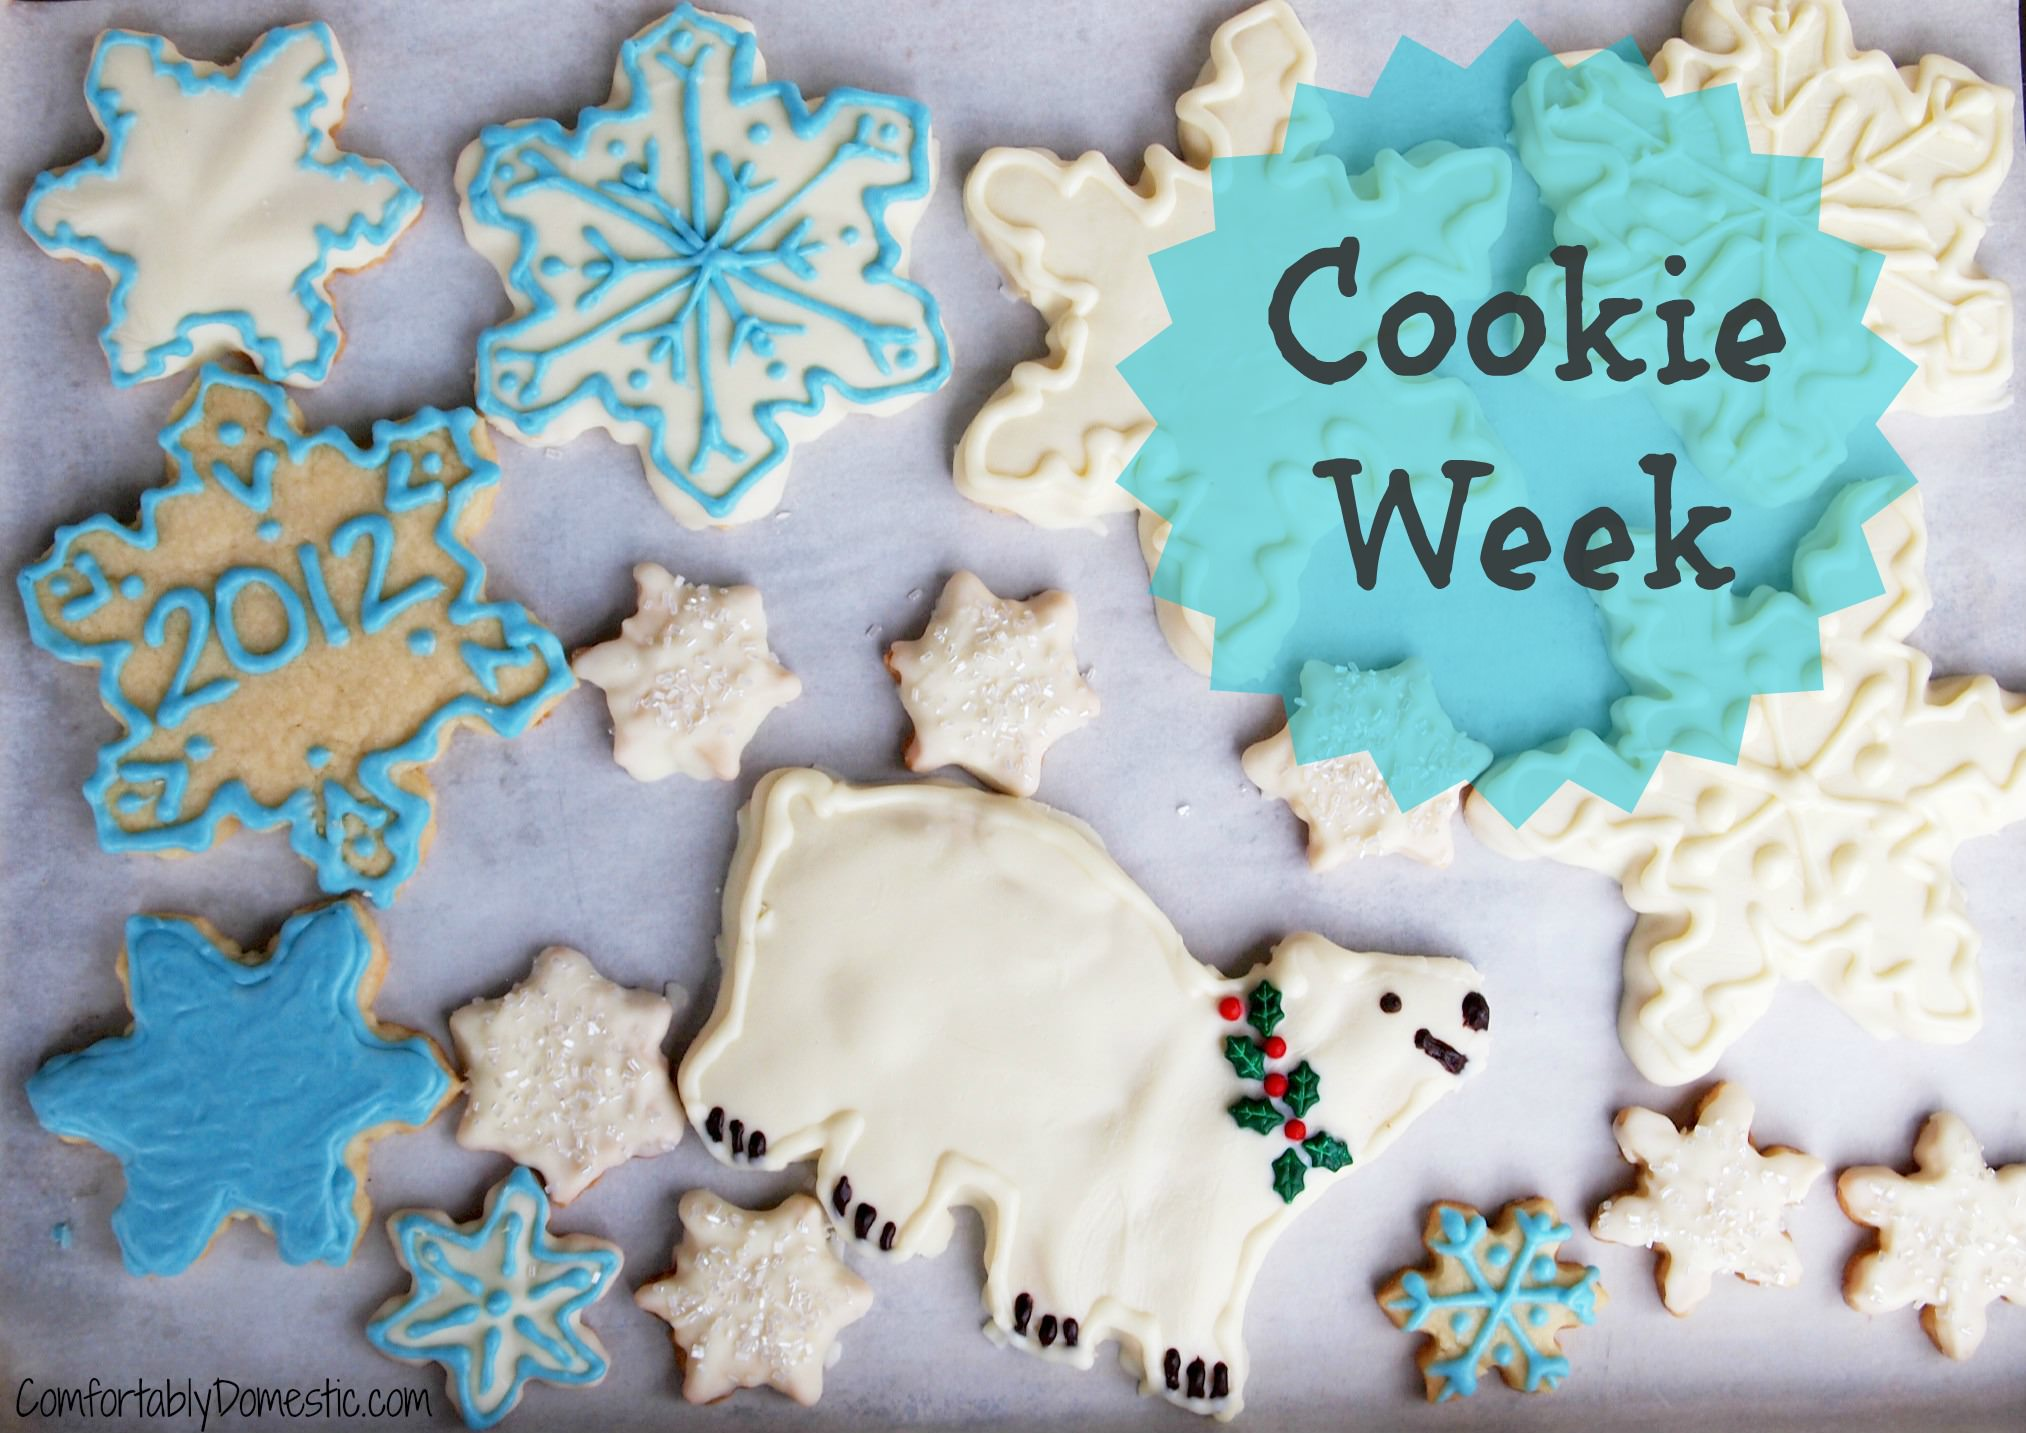 3 easy holiday cookie recipes, featuring maple bacon and chocolate are in this delicious cookie recipes post for the 4th day of Cookie Week 2012. Maple bacon and chocolate, oh my!